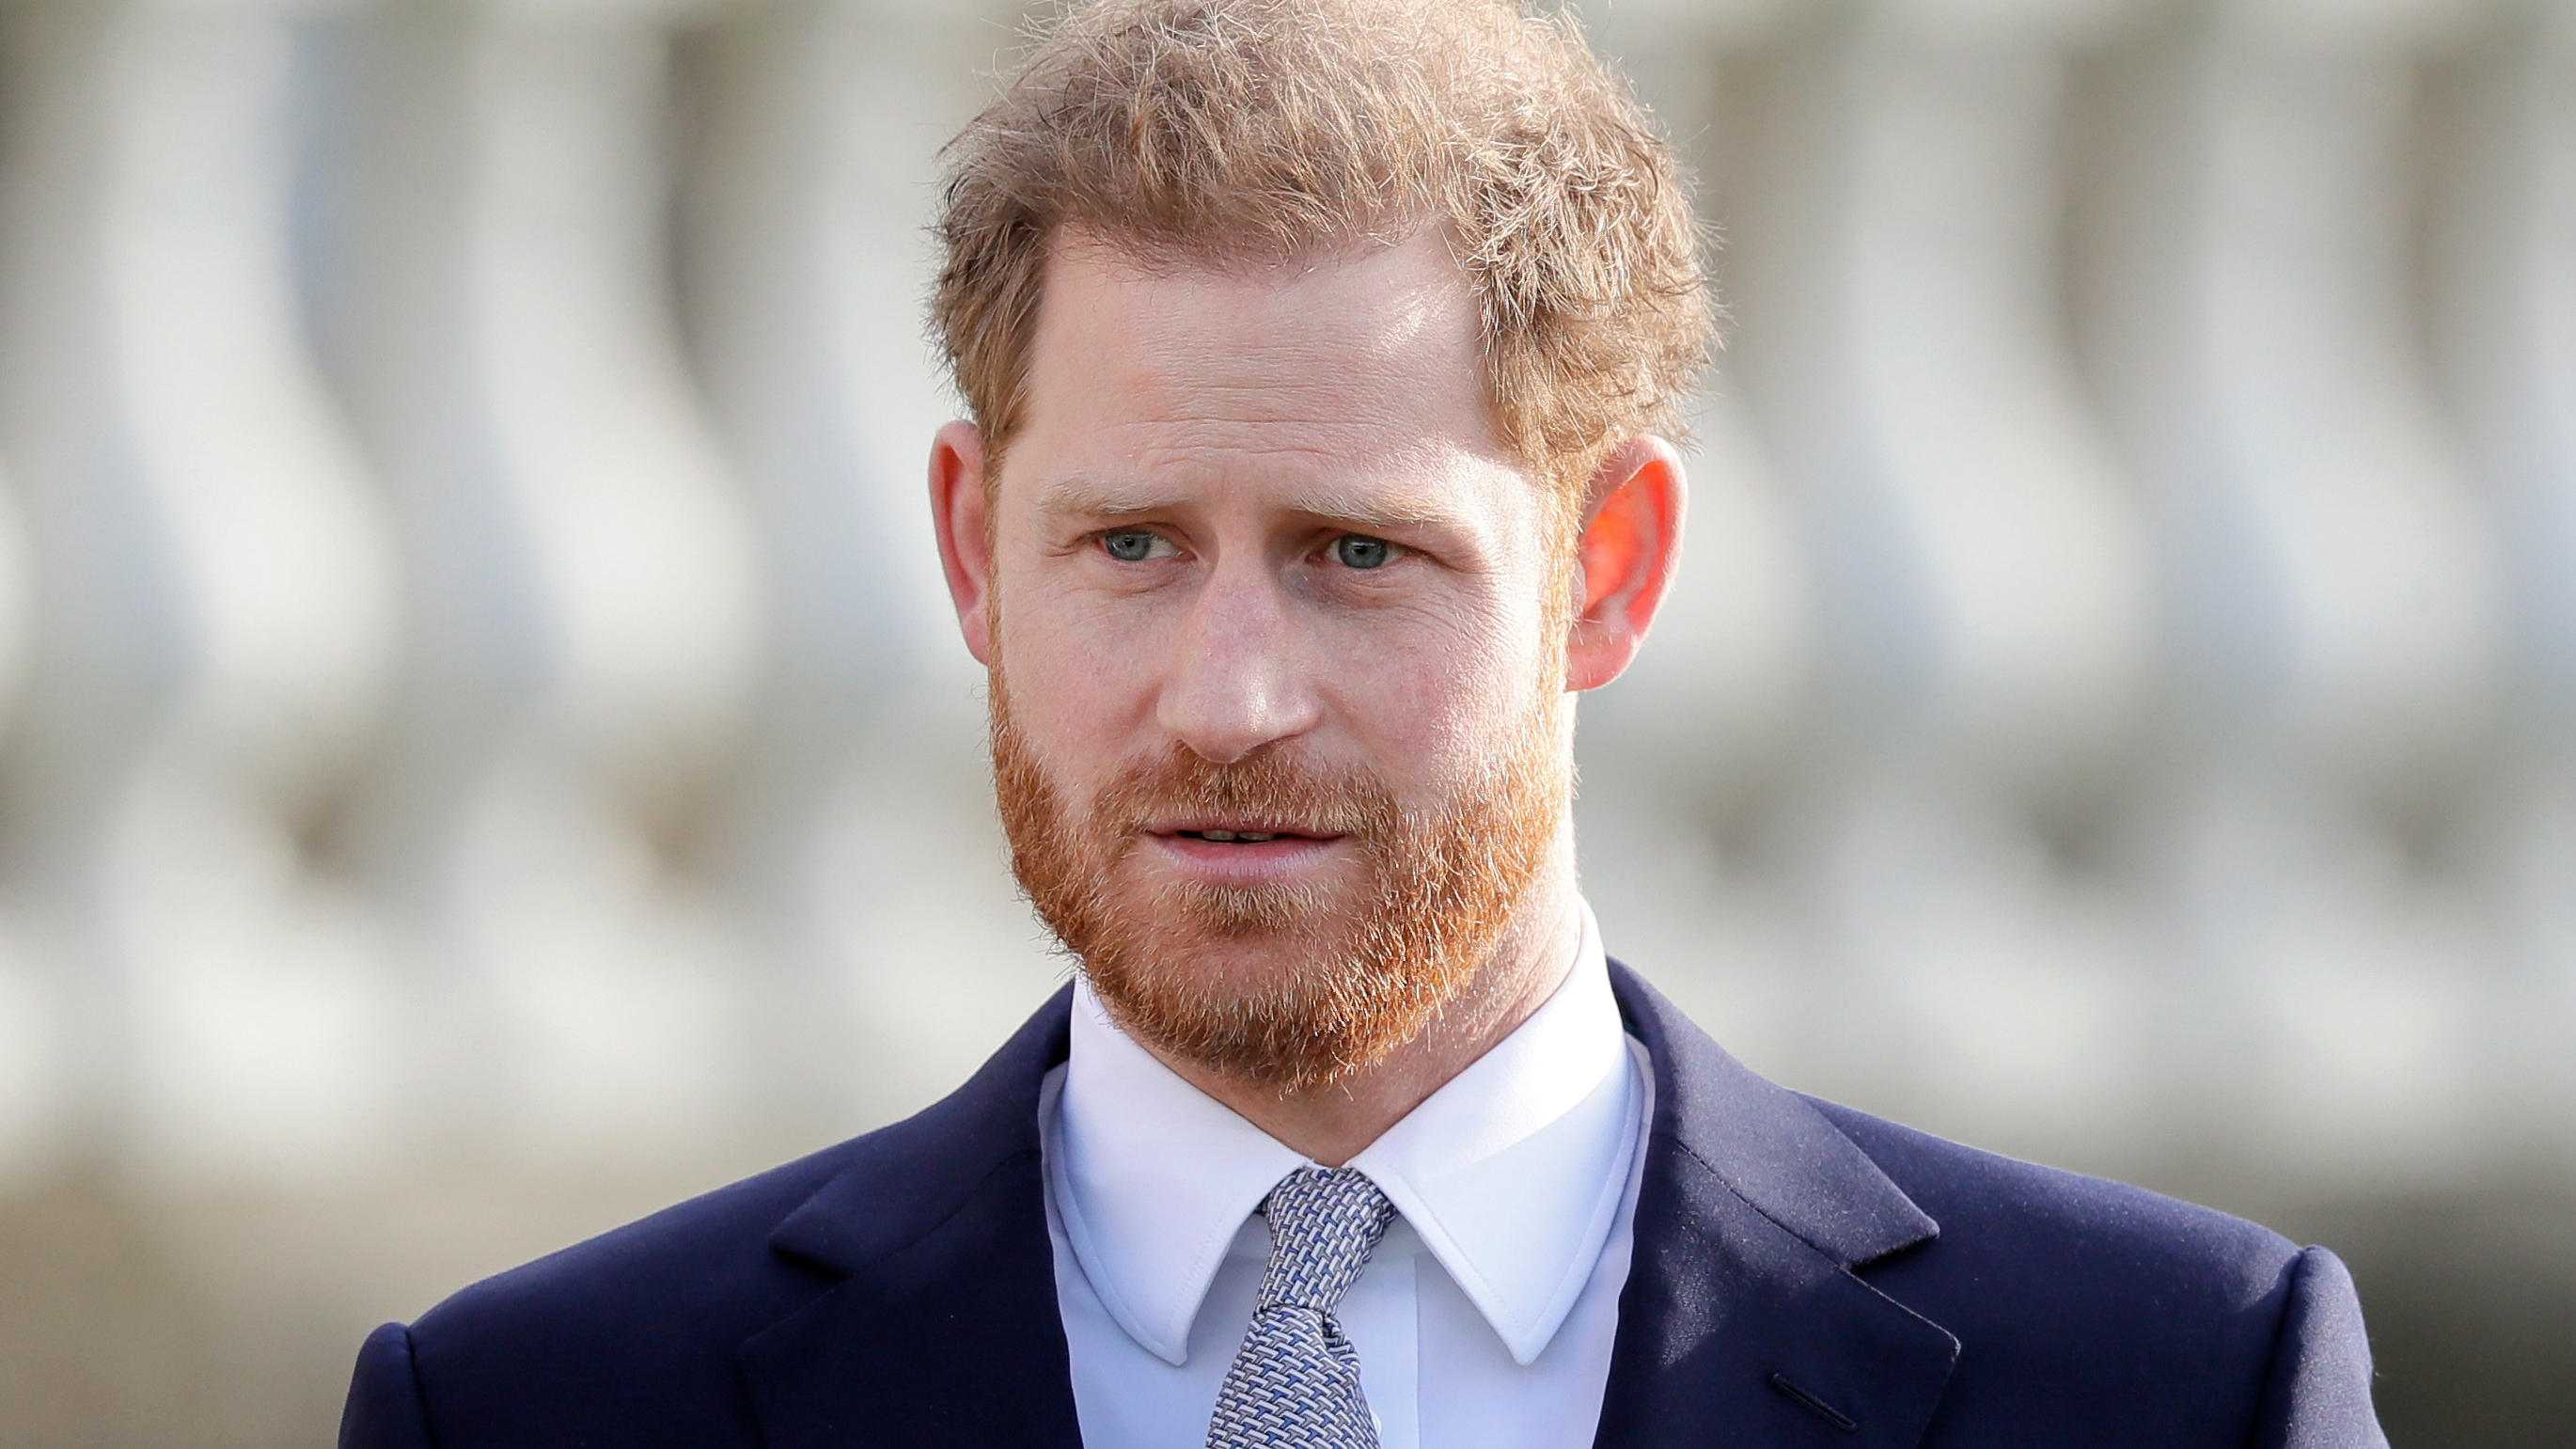 Prince Harry's reporter: he smelled of alcohol and cigarettes – VIP.de, Star News